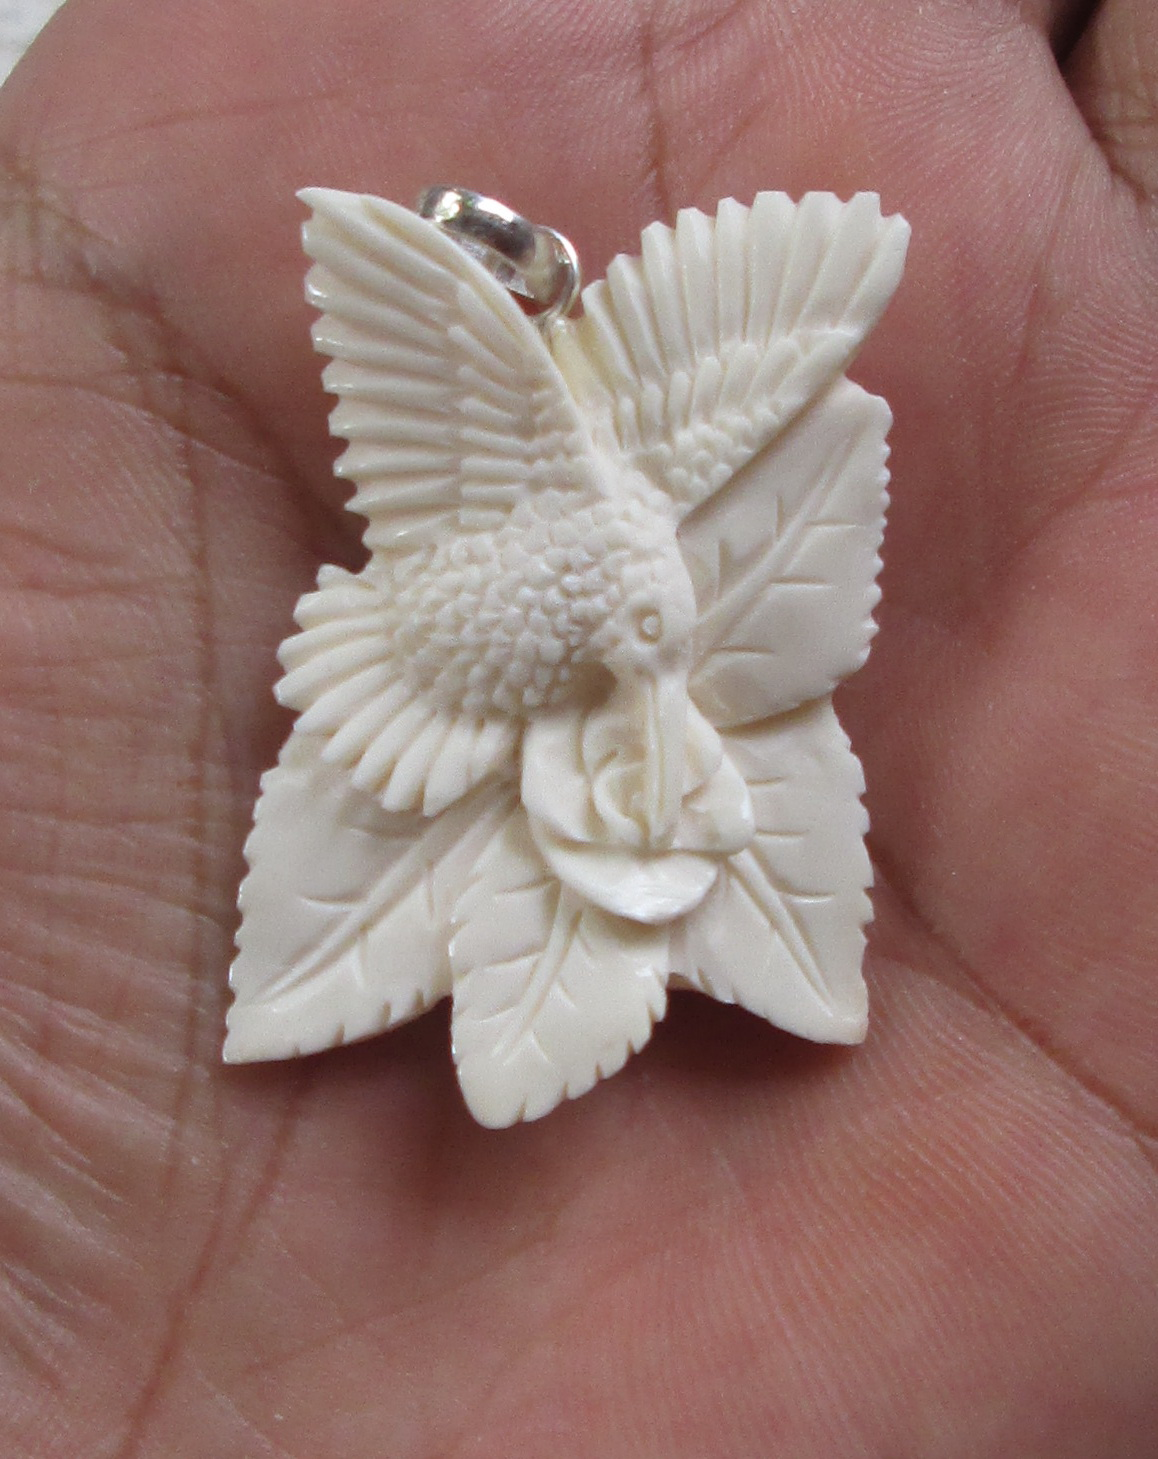 Humming Bird Carved Bone Pendants with Flower